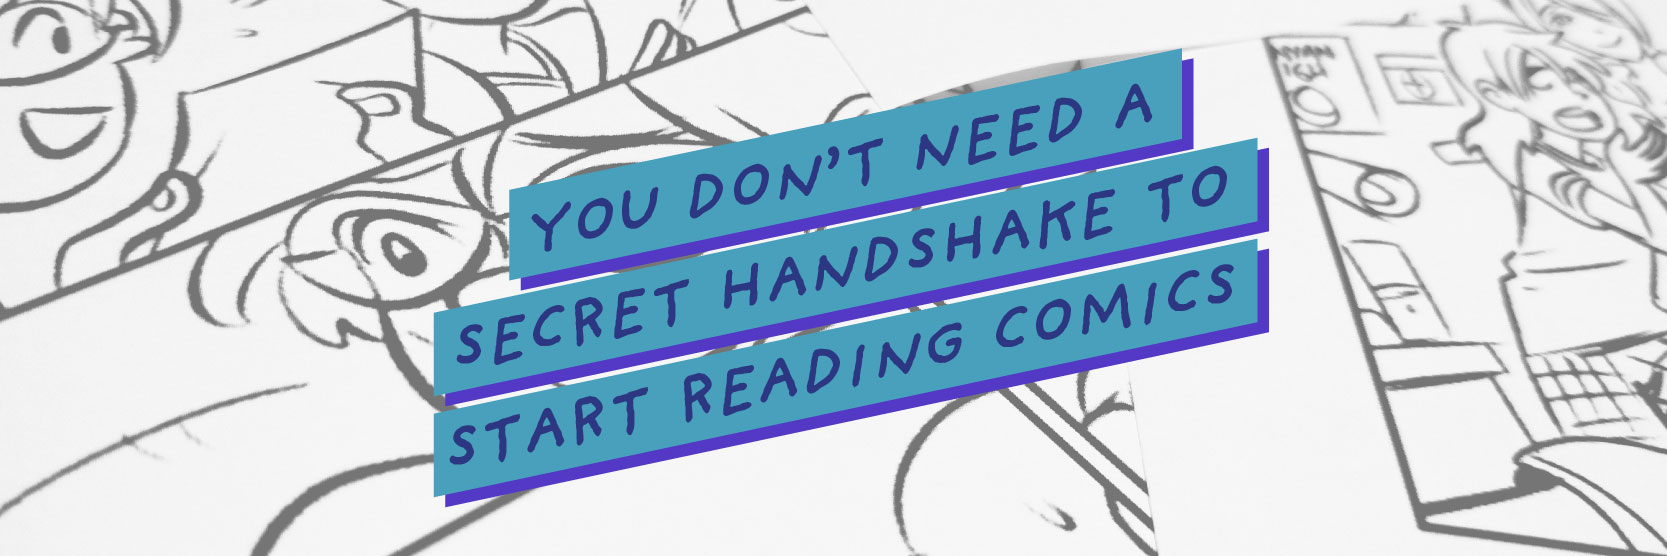 you don't need a secret handshake to read comics